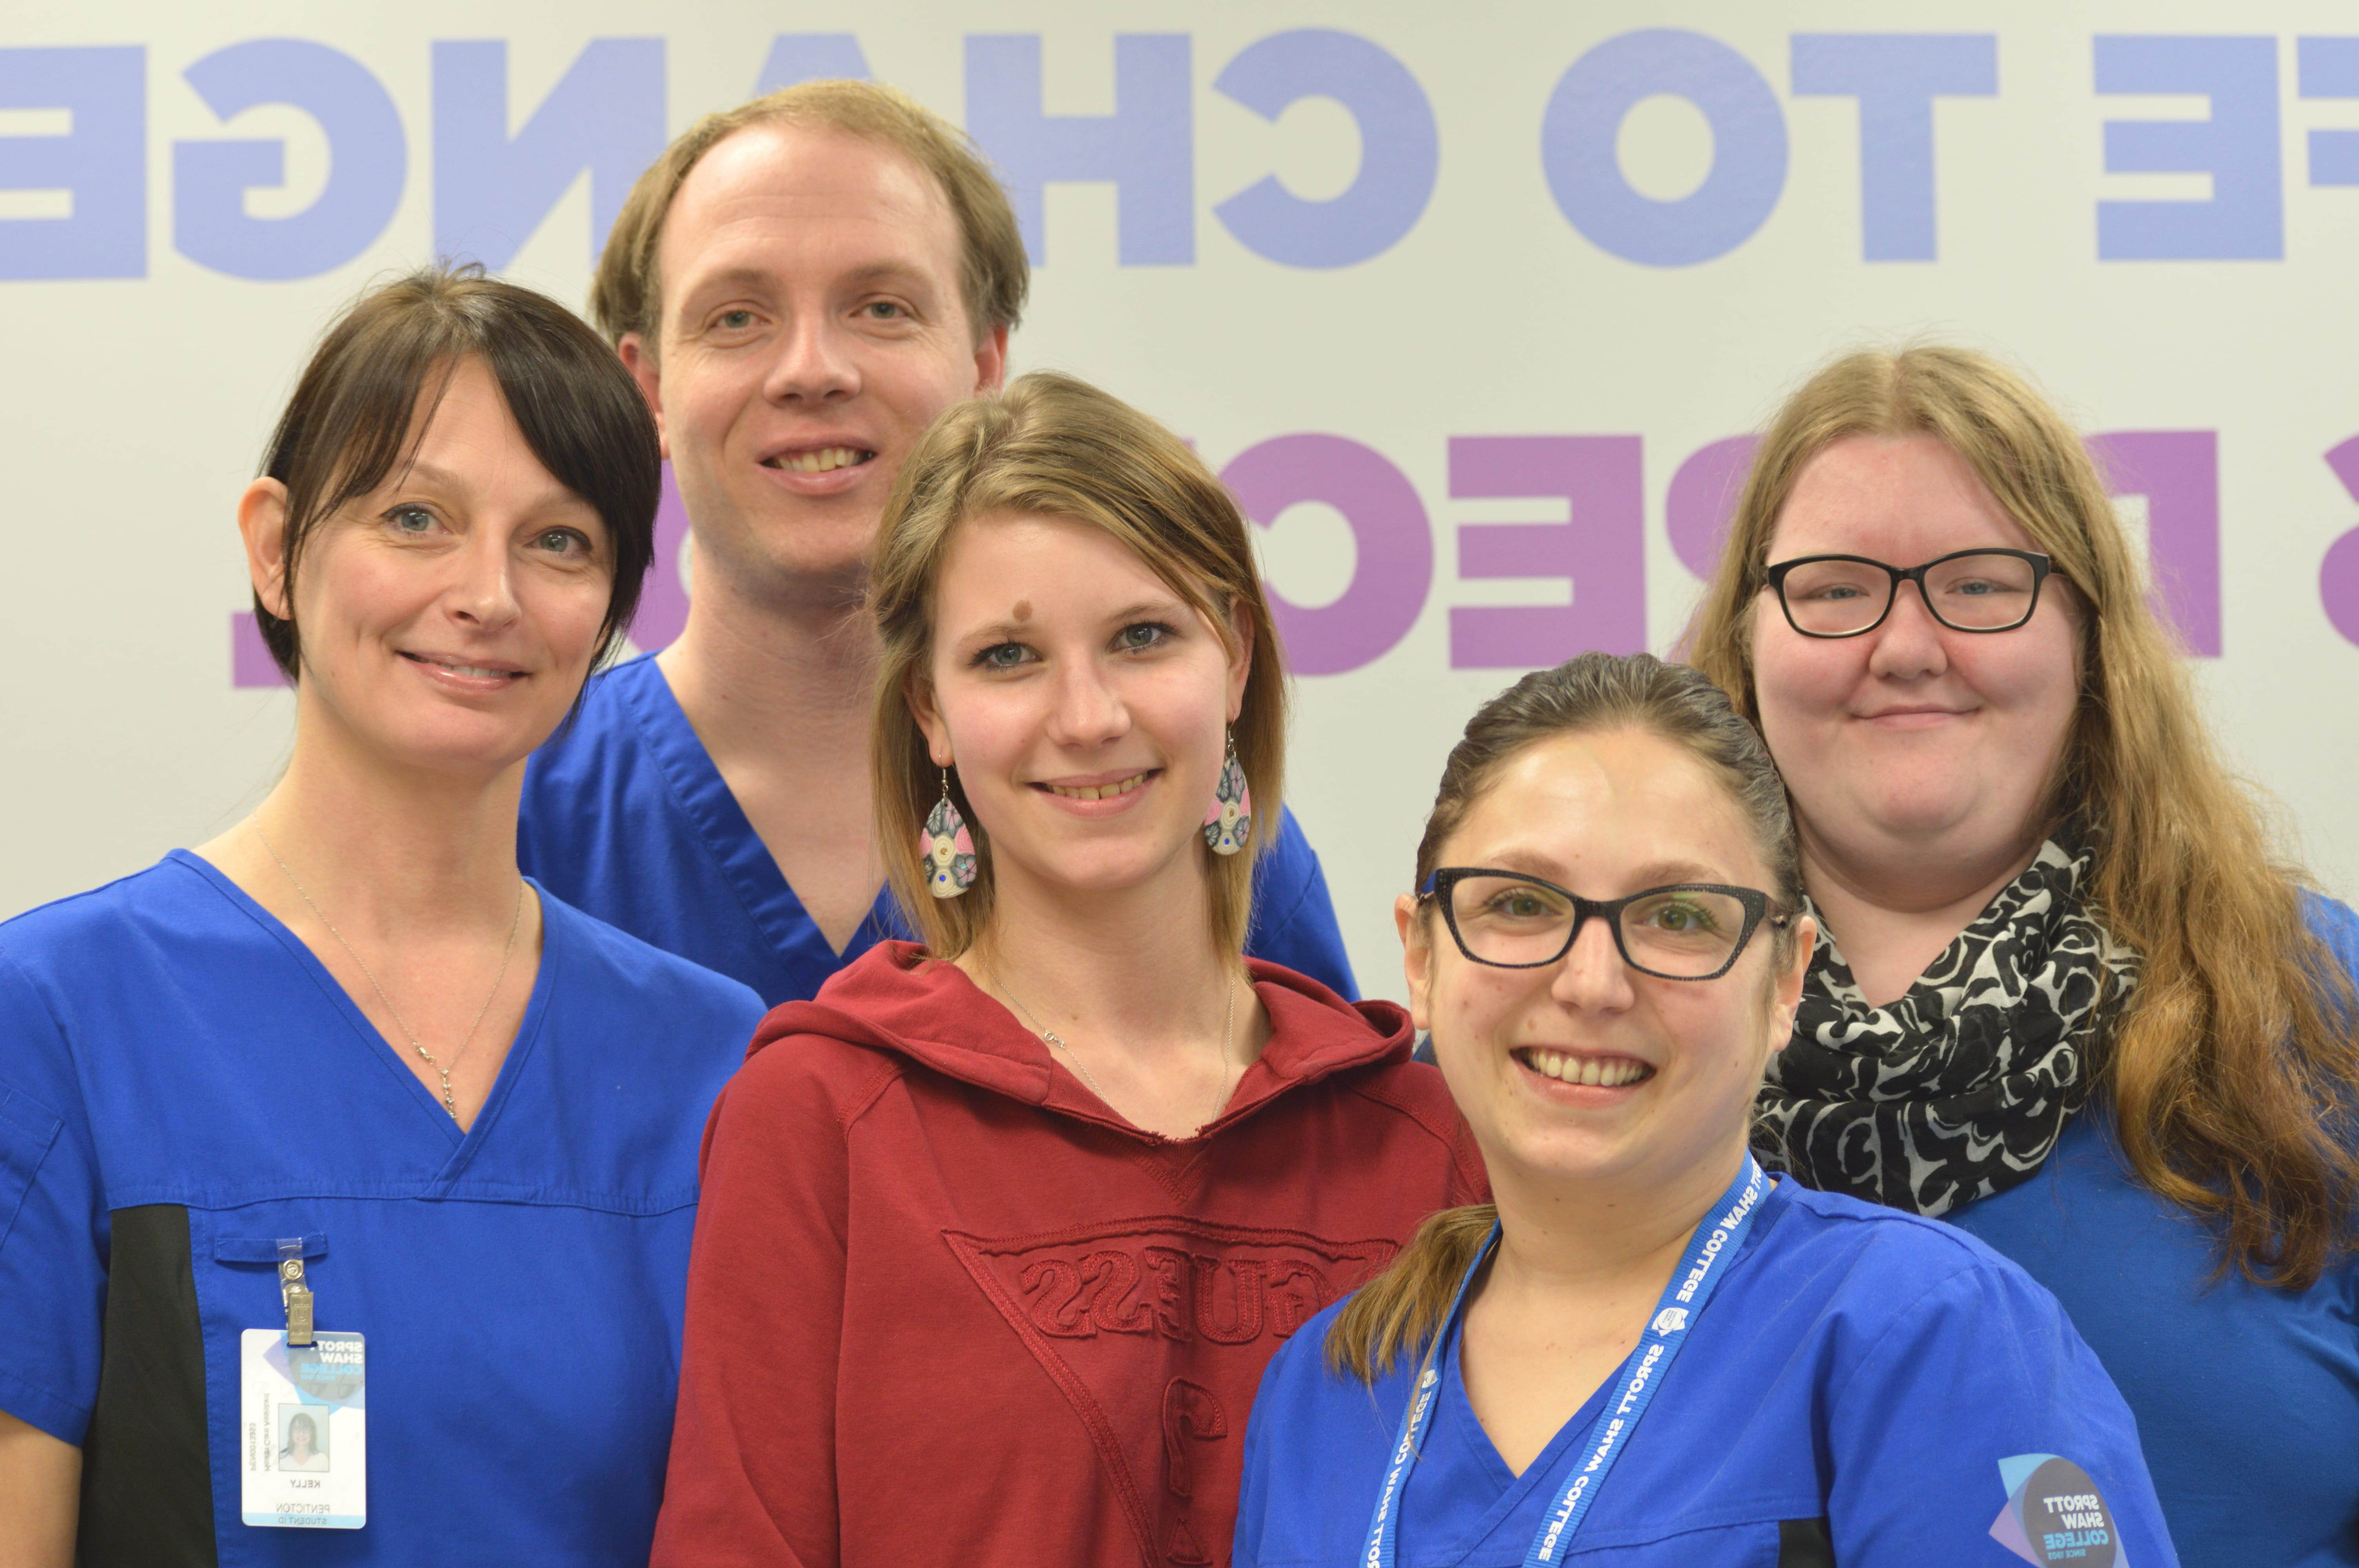 sprott shaw college penticton campus students health care assistant